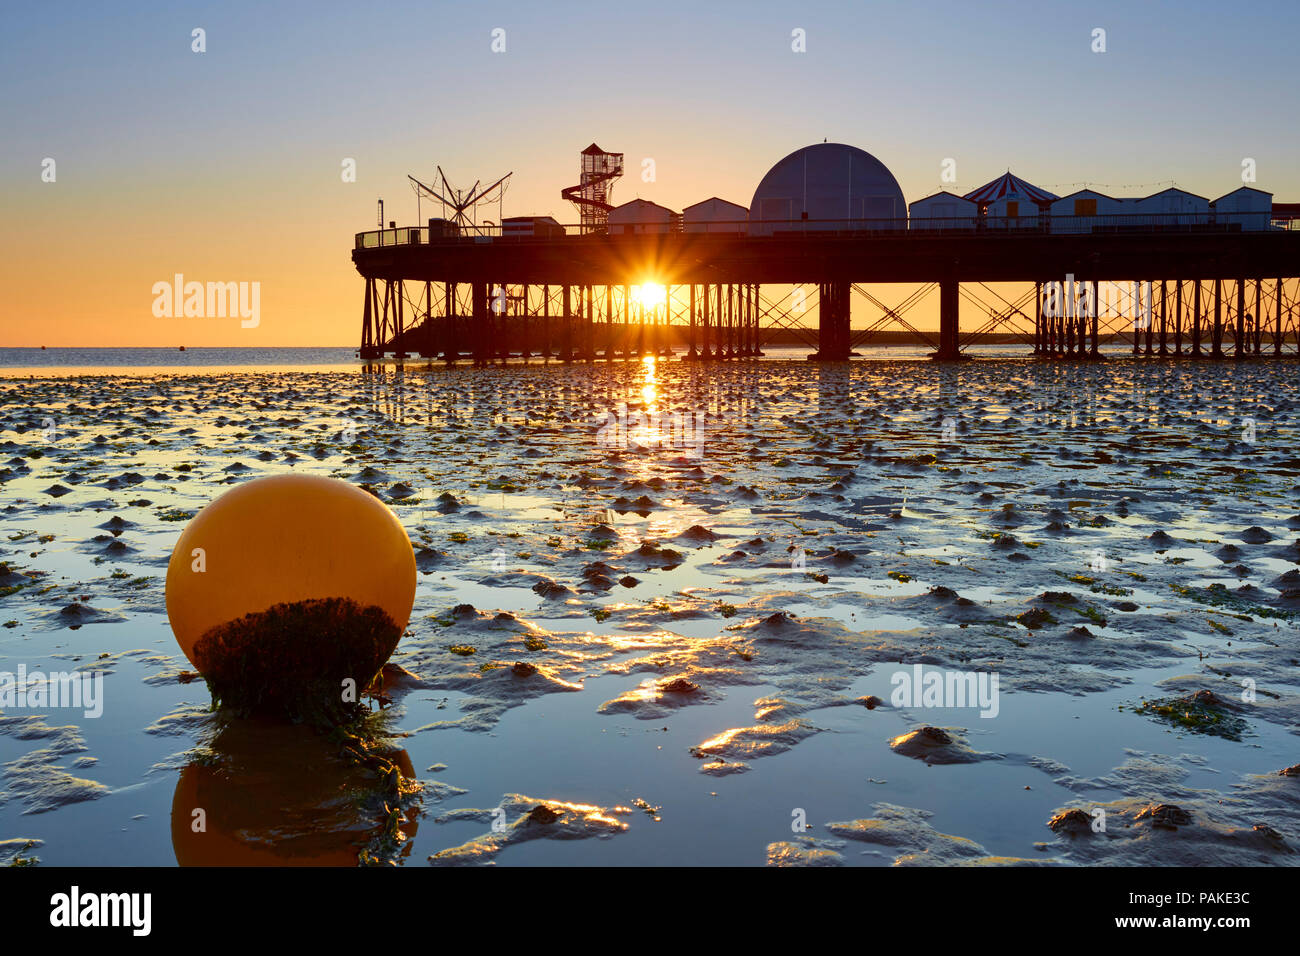 Herne Bay, Kent, UK. 24th July 2018: UK Weather. Sunrise at Herne Bay pier. With temperatures predicted higher than 30°C many people will be flocking to the seaside for the holiday season. The high temperatures could last into next week, and with clear skies people are advised to stay out of the sun between 11am and 3pm. Credit: Alan Payton/Alamy Live News - Stock Image